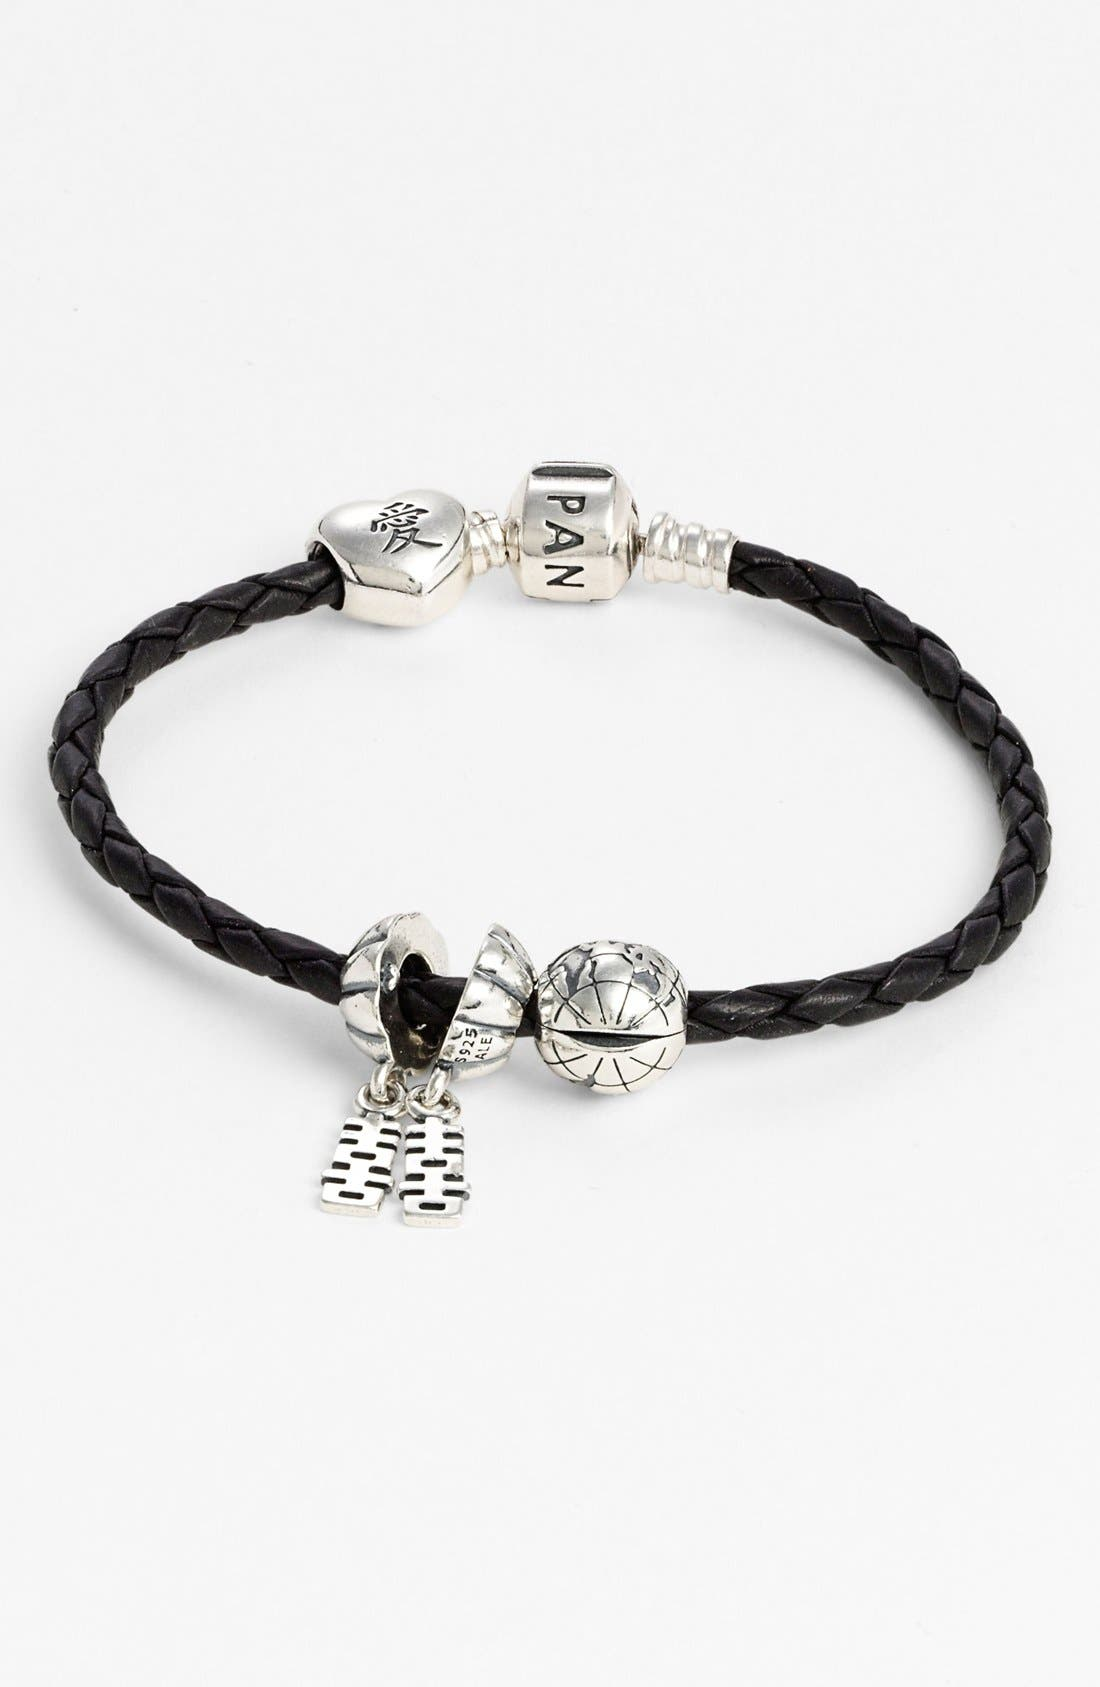 Alternate Image 1 Selected - PANDORA Woven Leather Charm Bracelet